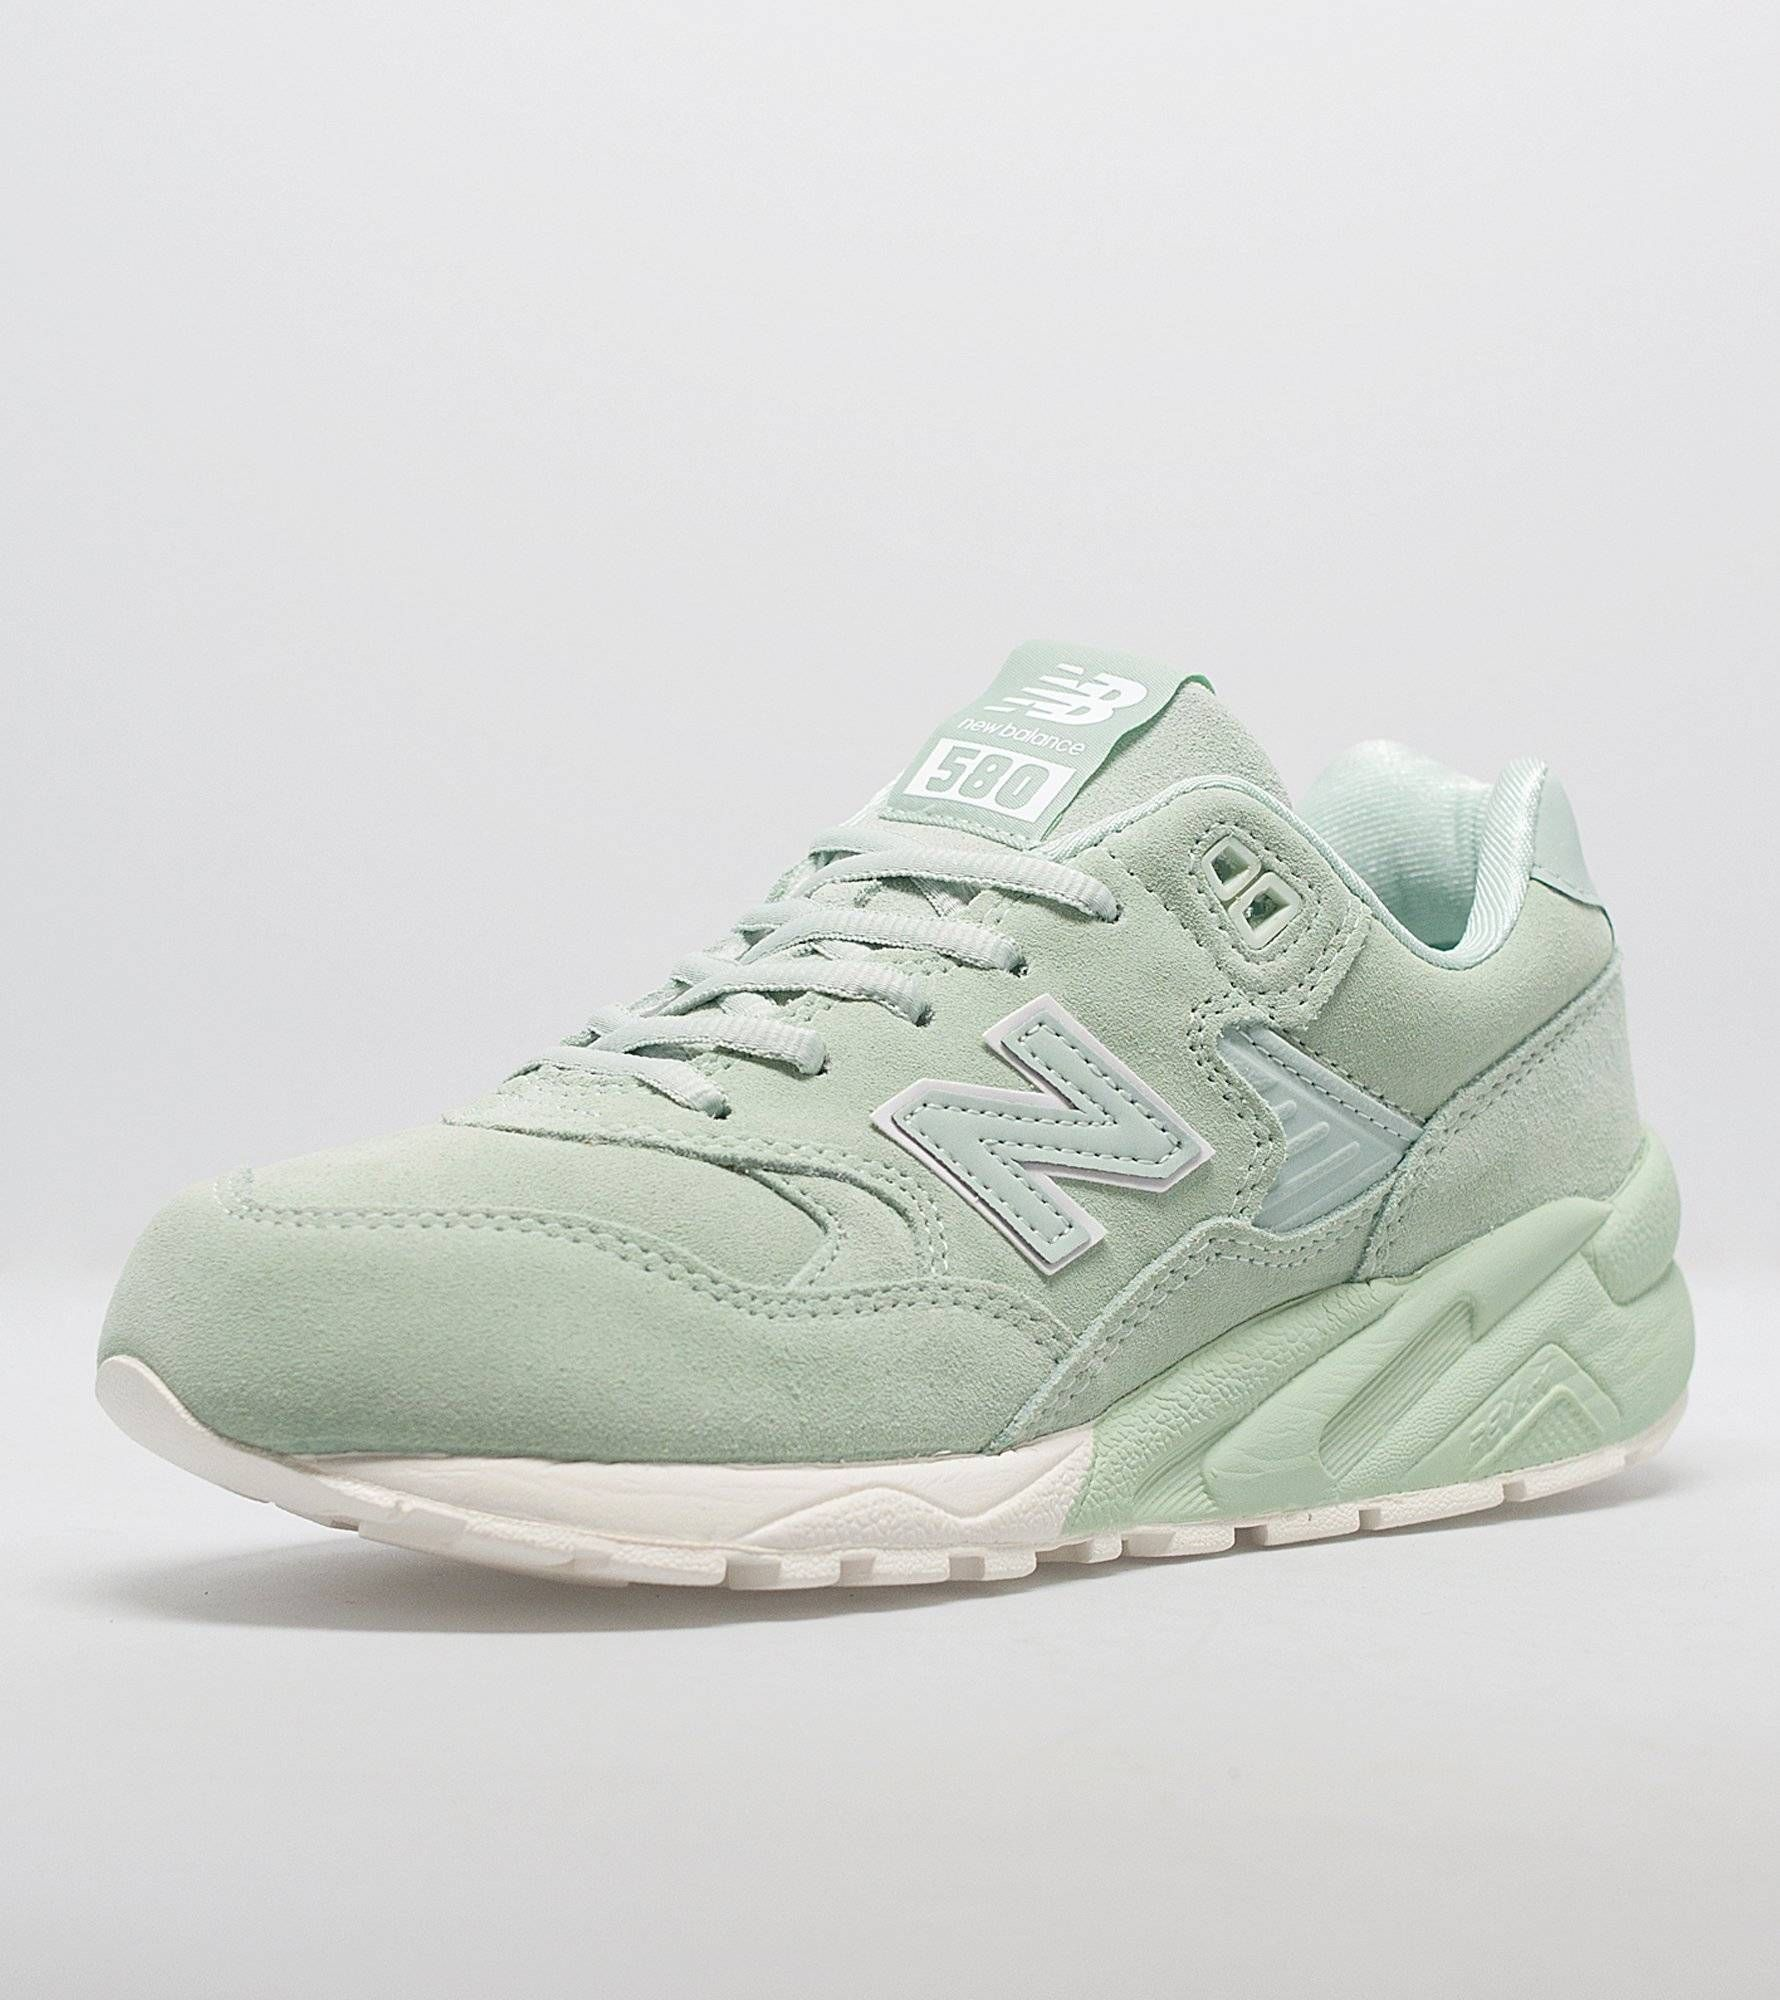 new balance green 580 trainers